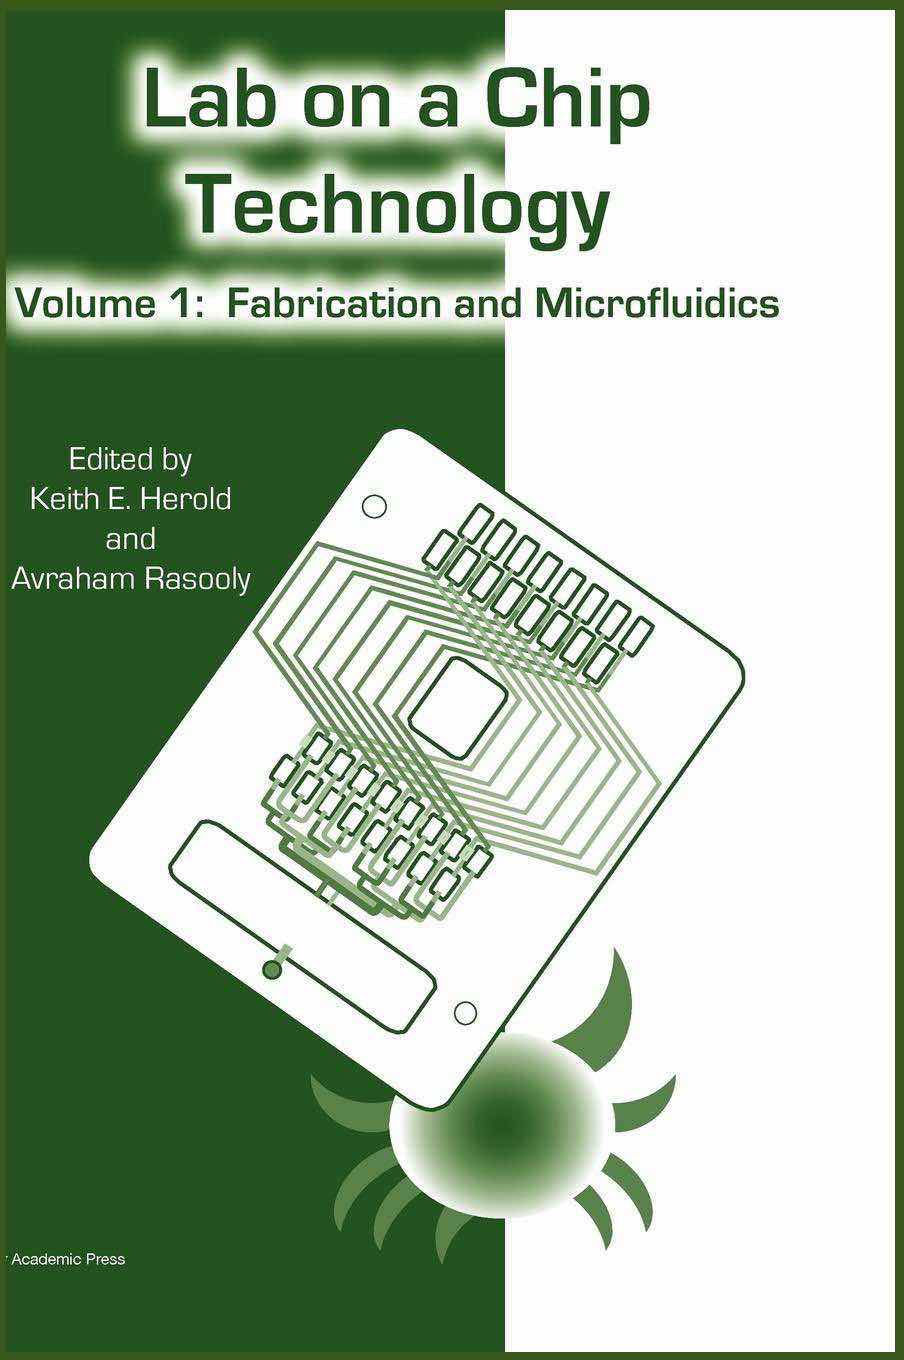 Lab-on-a-Chip Technology (Vol. 1) book